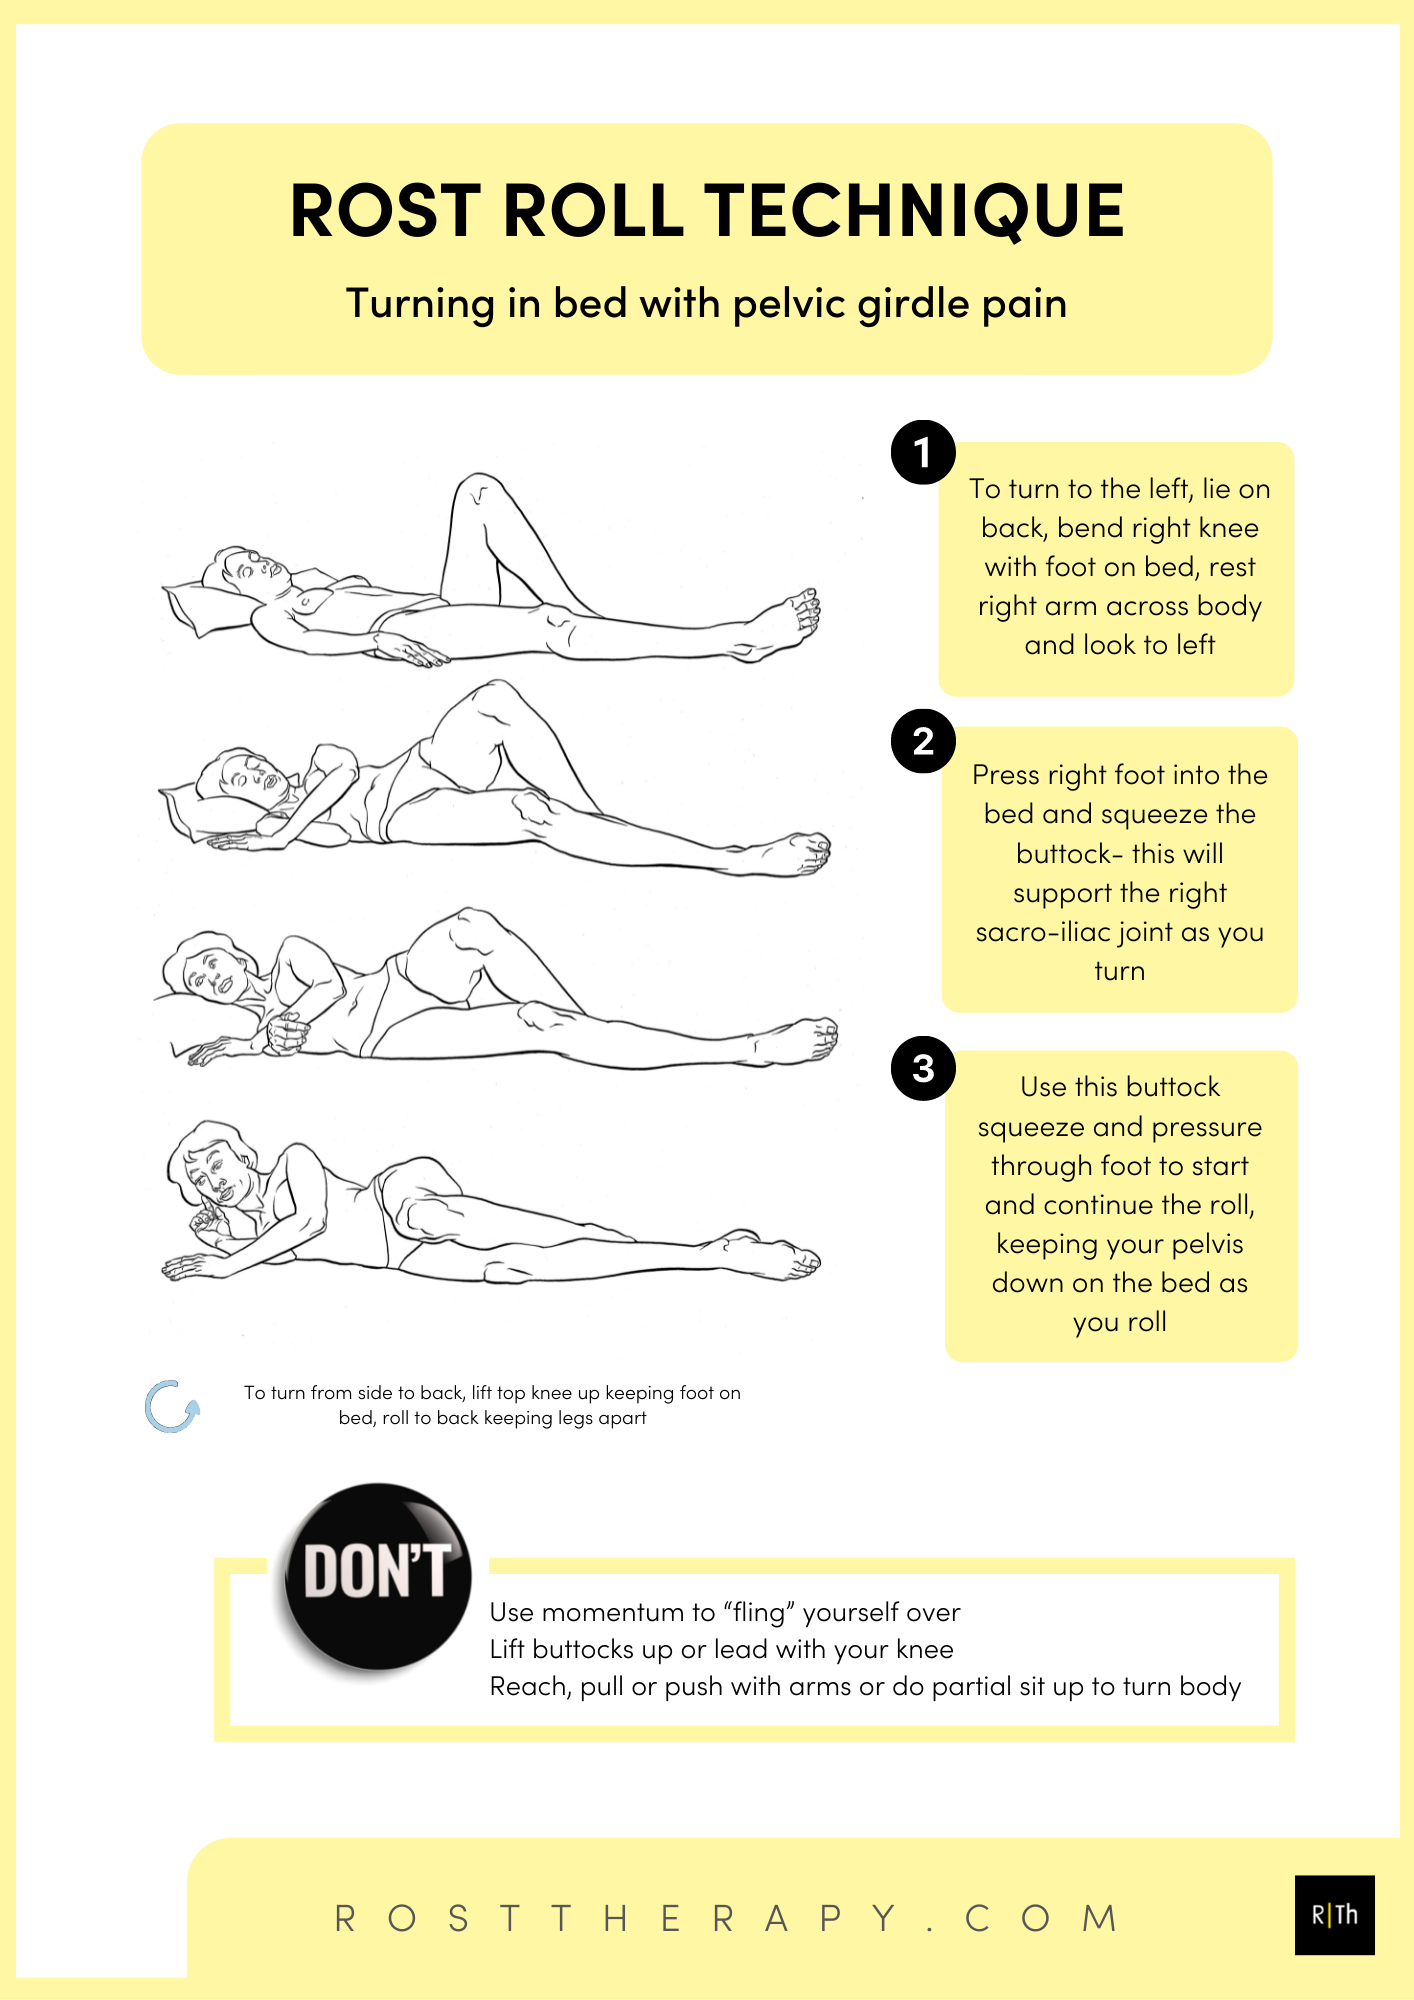 Rost roll for pelvic girdle pain